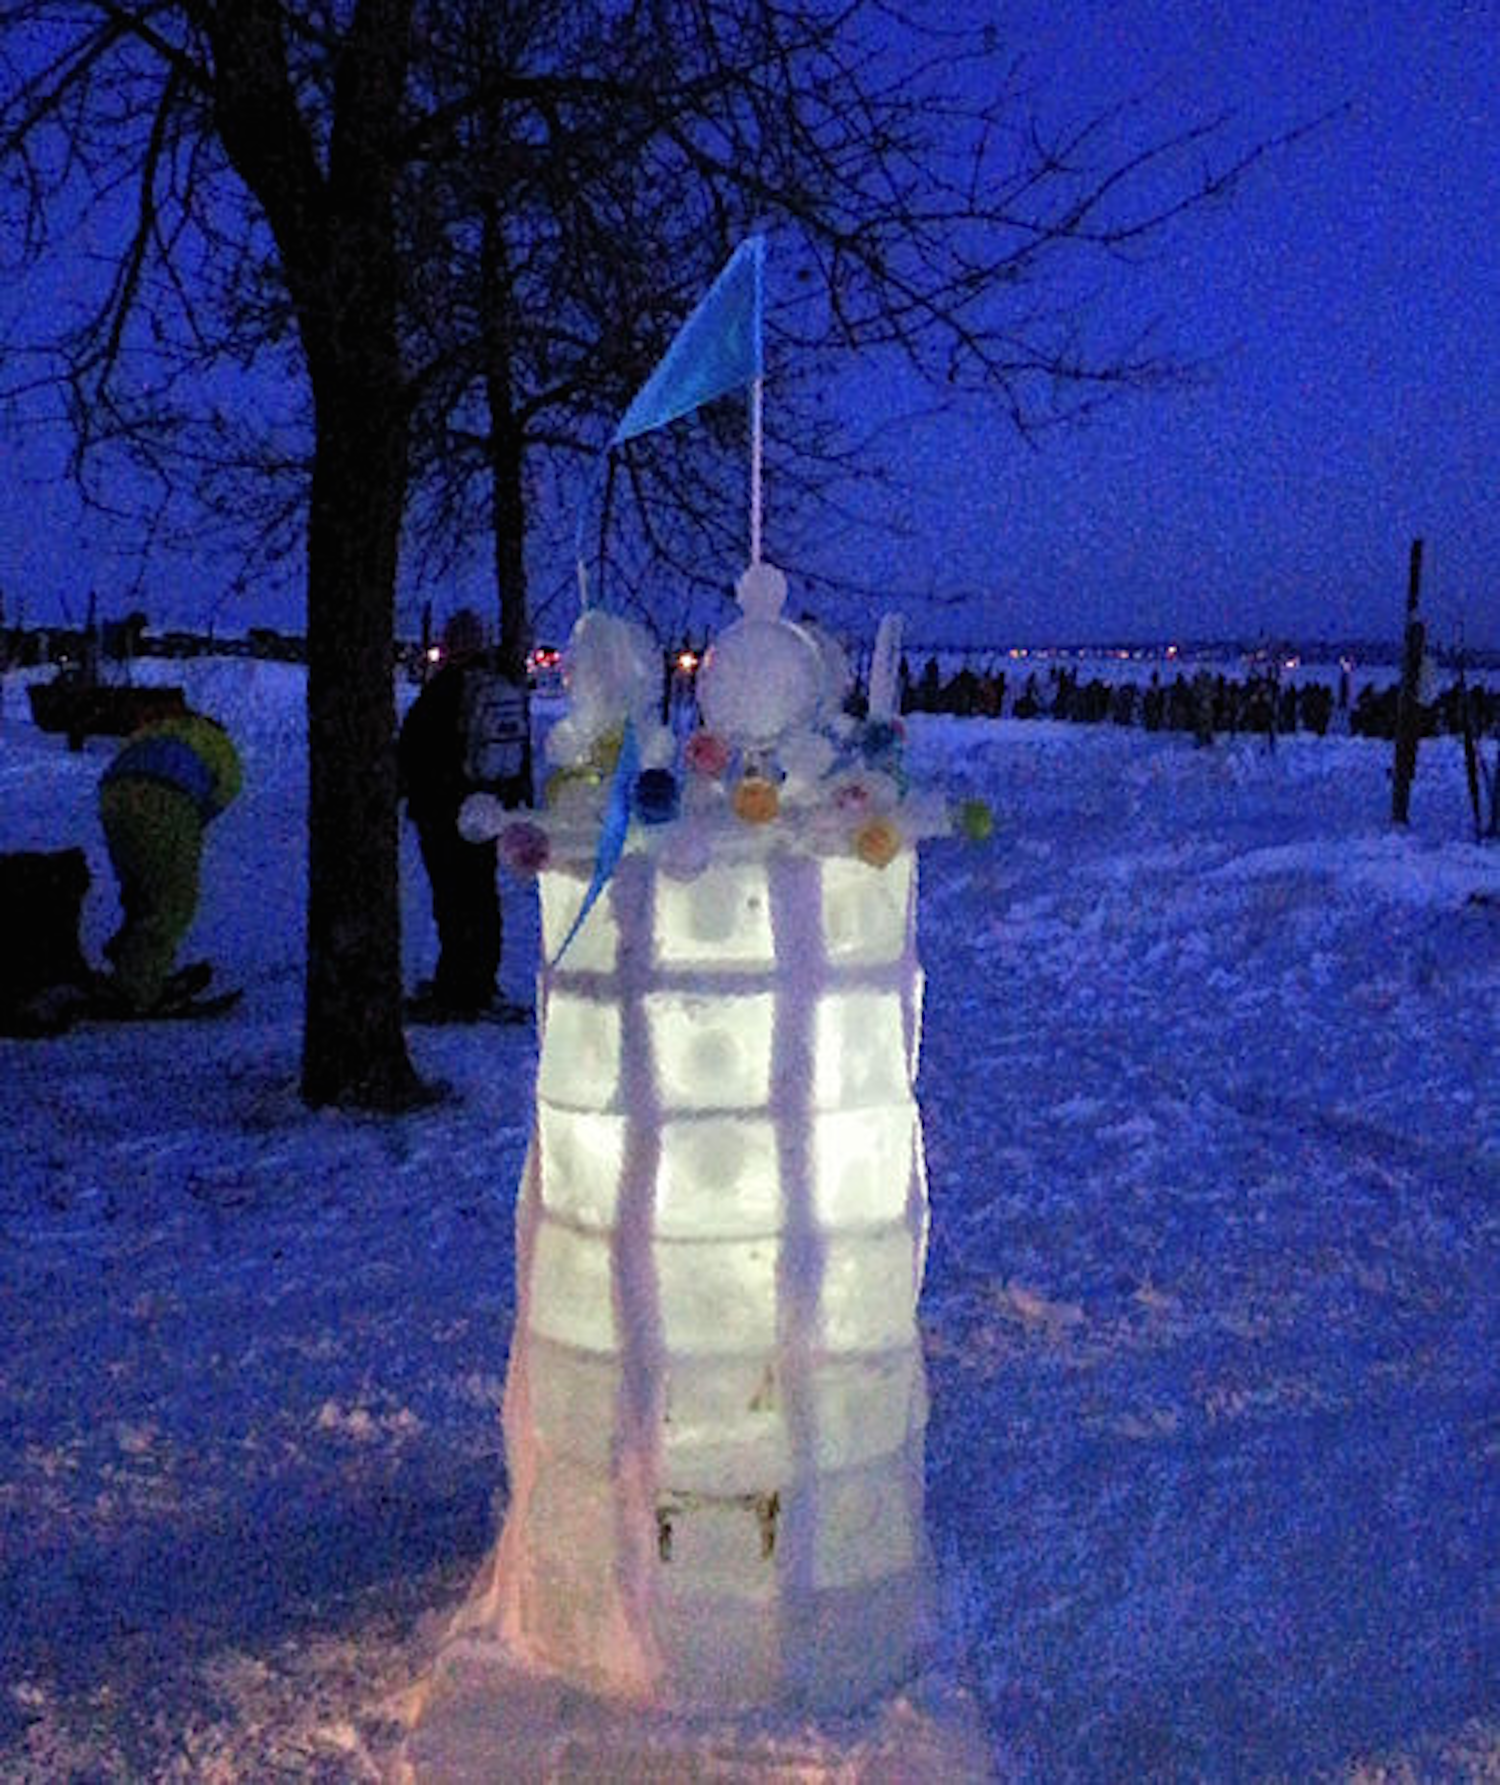 Tower Ice Sculpture for Book Across the Bay Ashland, Wisconsin, Feb 2015